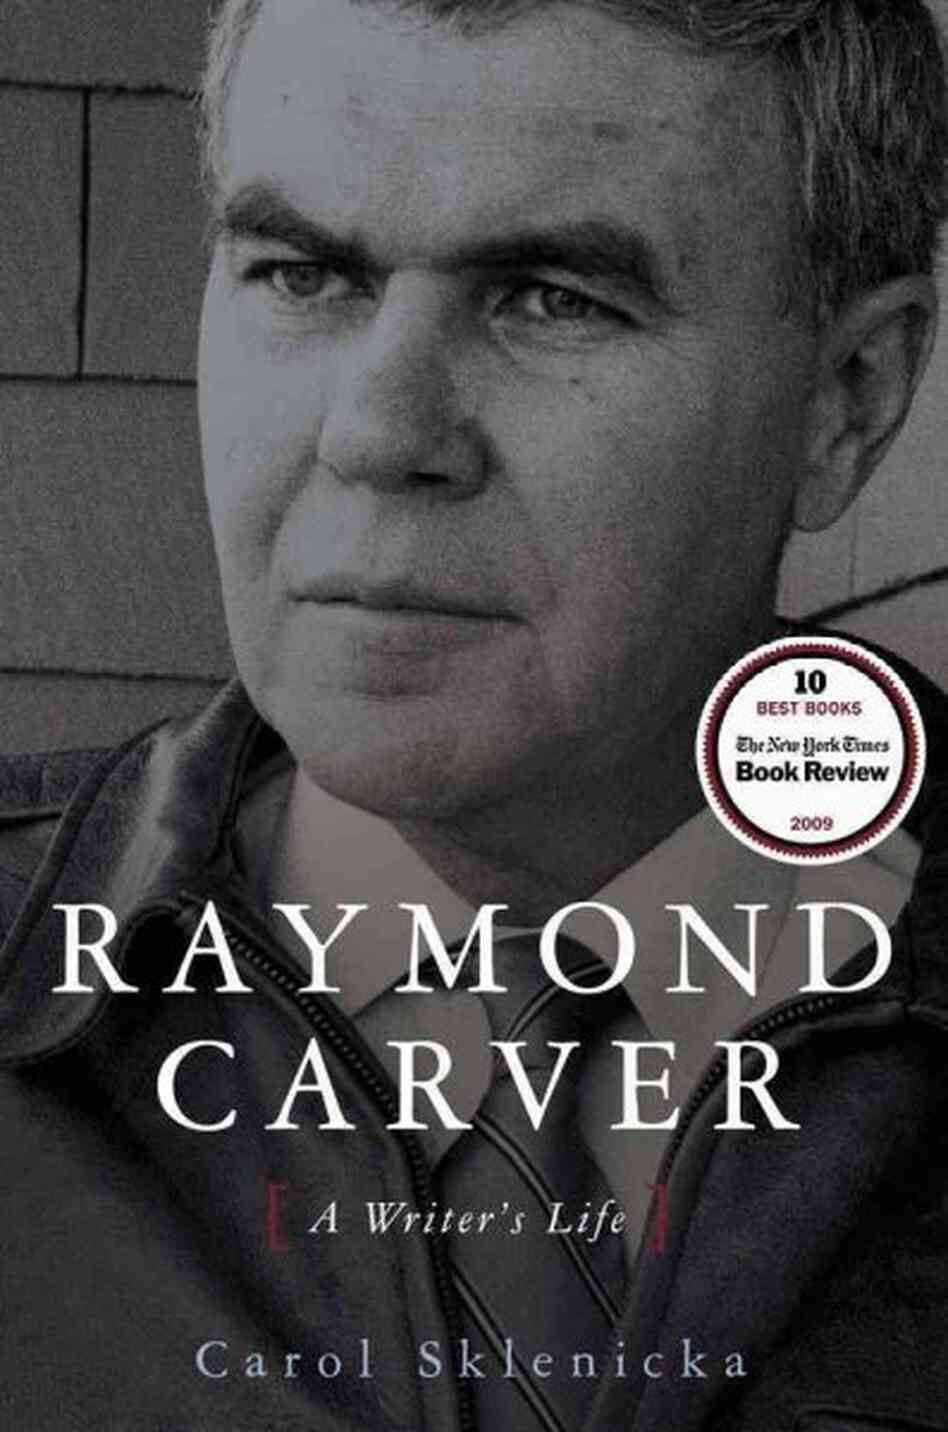 raymond carver the father Many consider the minimalist raymond carver the father of today's young writershere's why when arnoldo mondadori-published cathedral, a collection of short stories by raymond carver, in italy in 1984, critical attention was limited to a narrow elite.